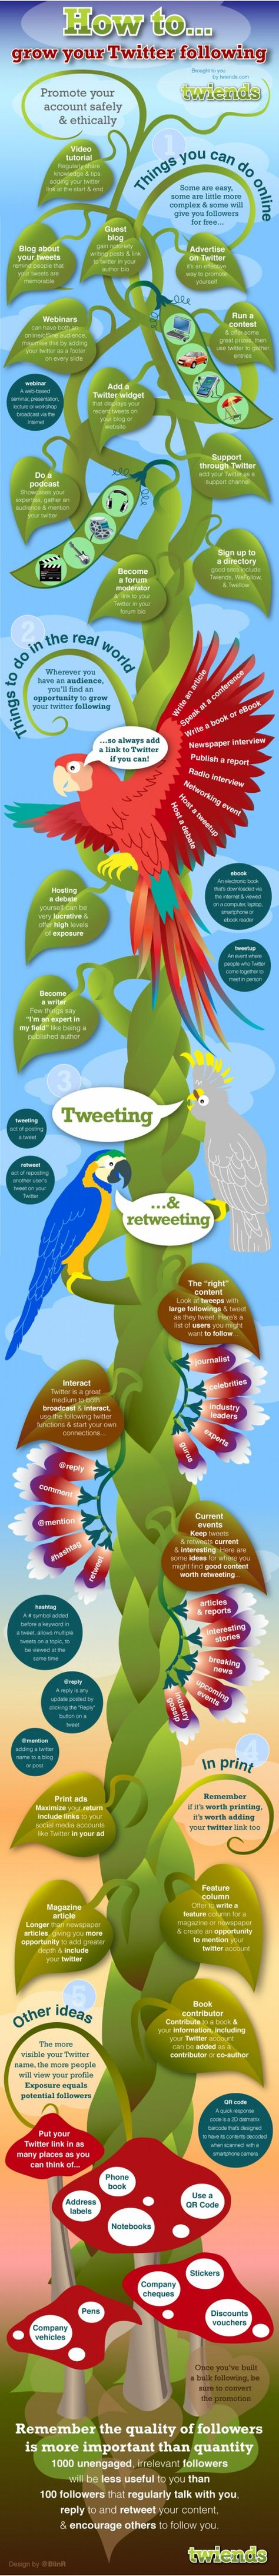 How To Grow Your Twitter Following - Infographic